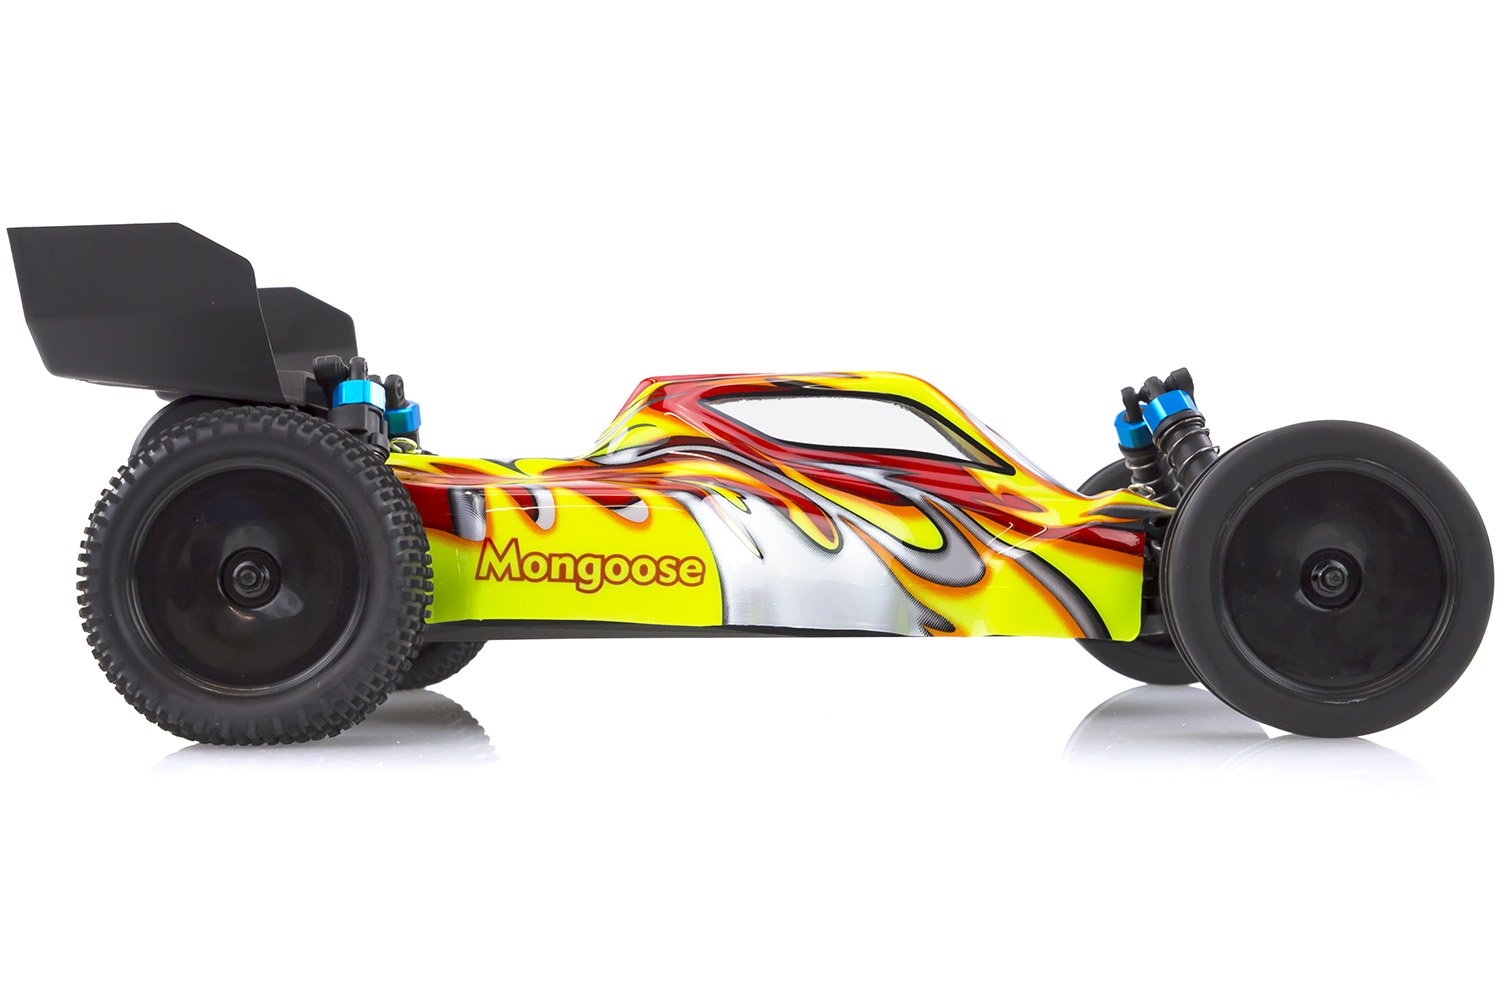 HSP 1/10 Mongoose 2WD Electric Off Road RTR RC Buggy